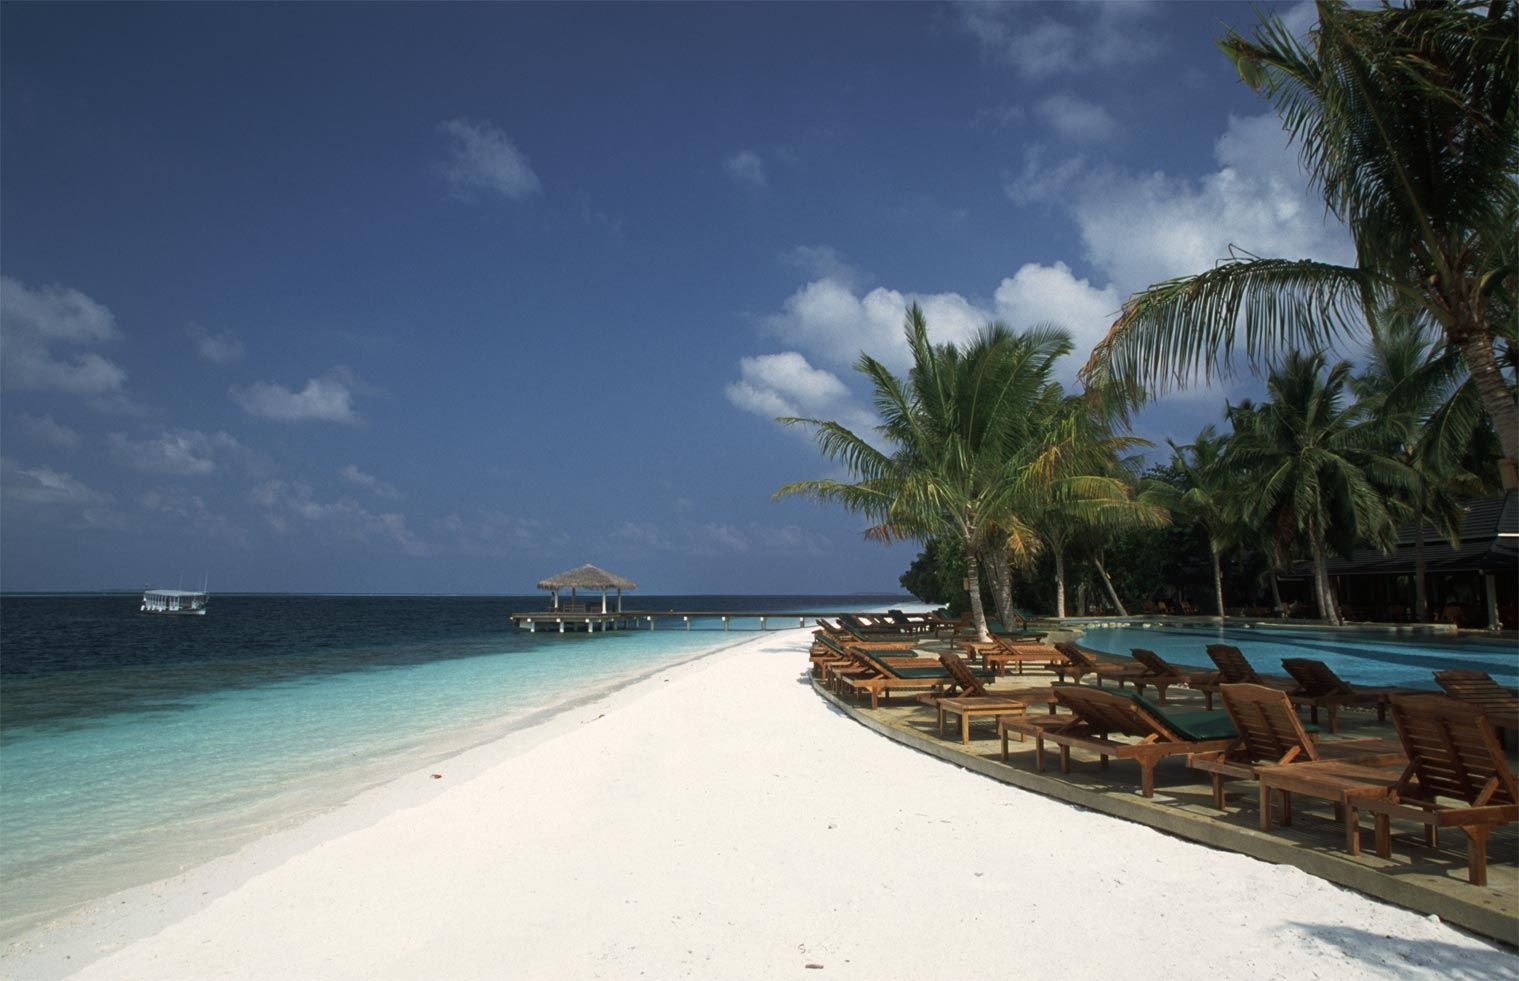 c38583dc29a Escape to Royal Island Resort & Spa for stunning views and limitless ...